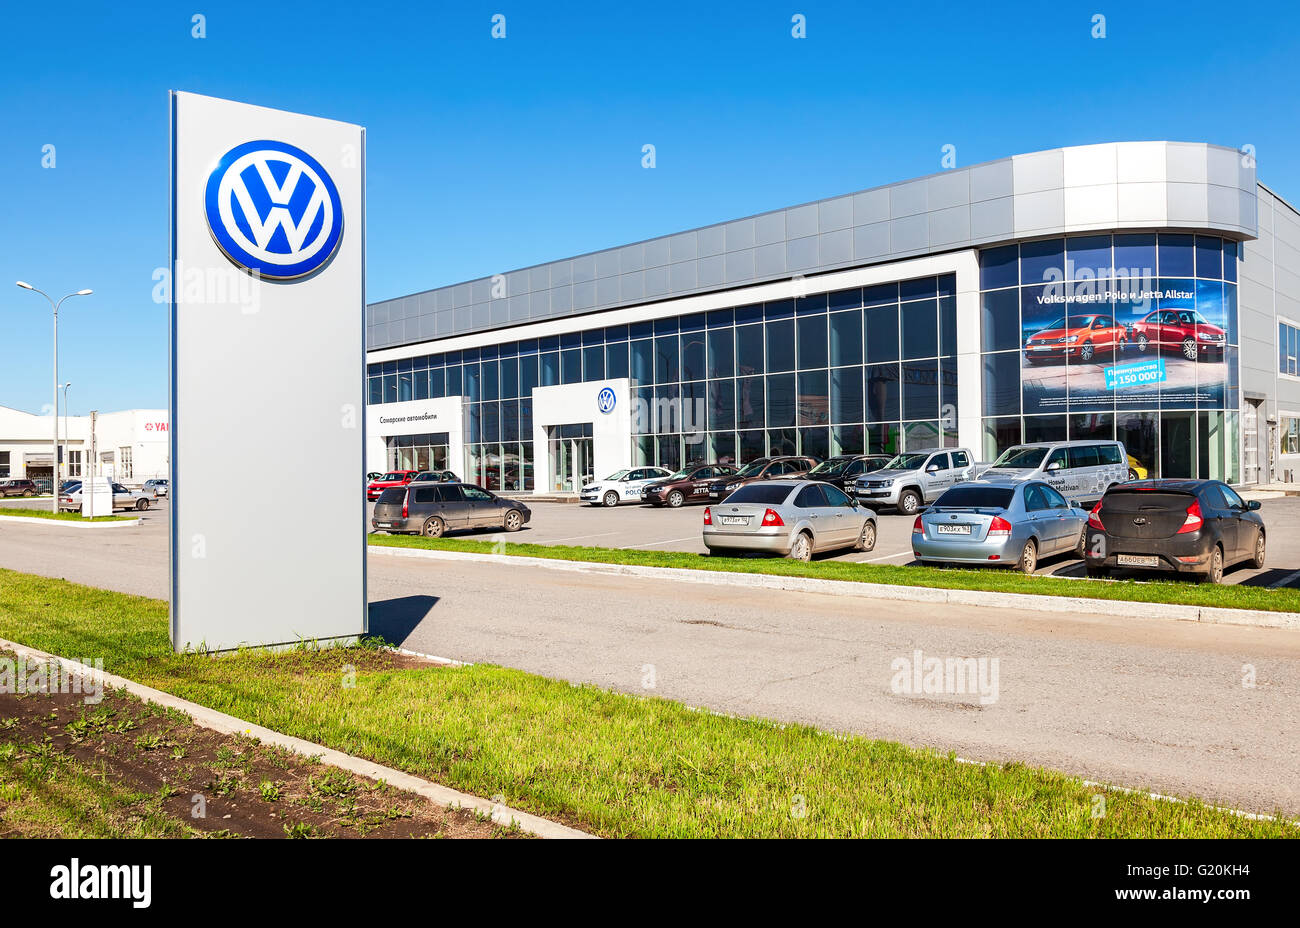 Volkswagen Showroom Stock Photos Amp Volkswagen Showroom